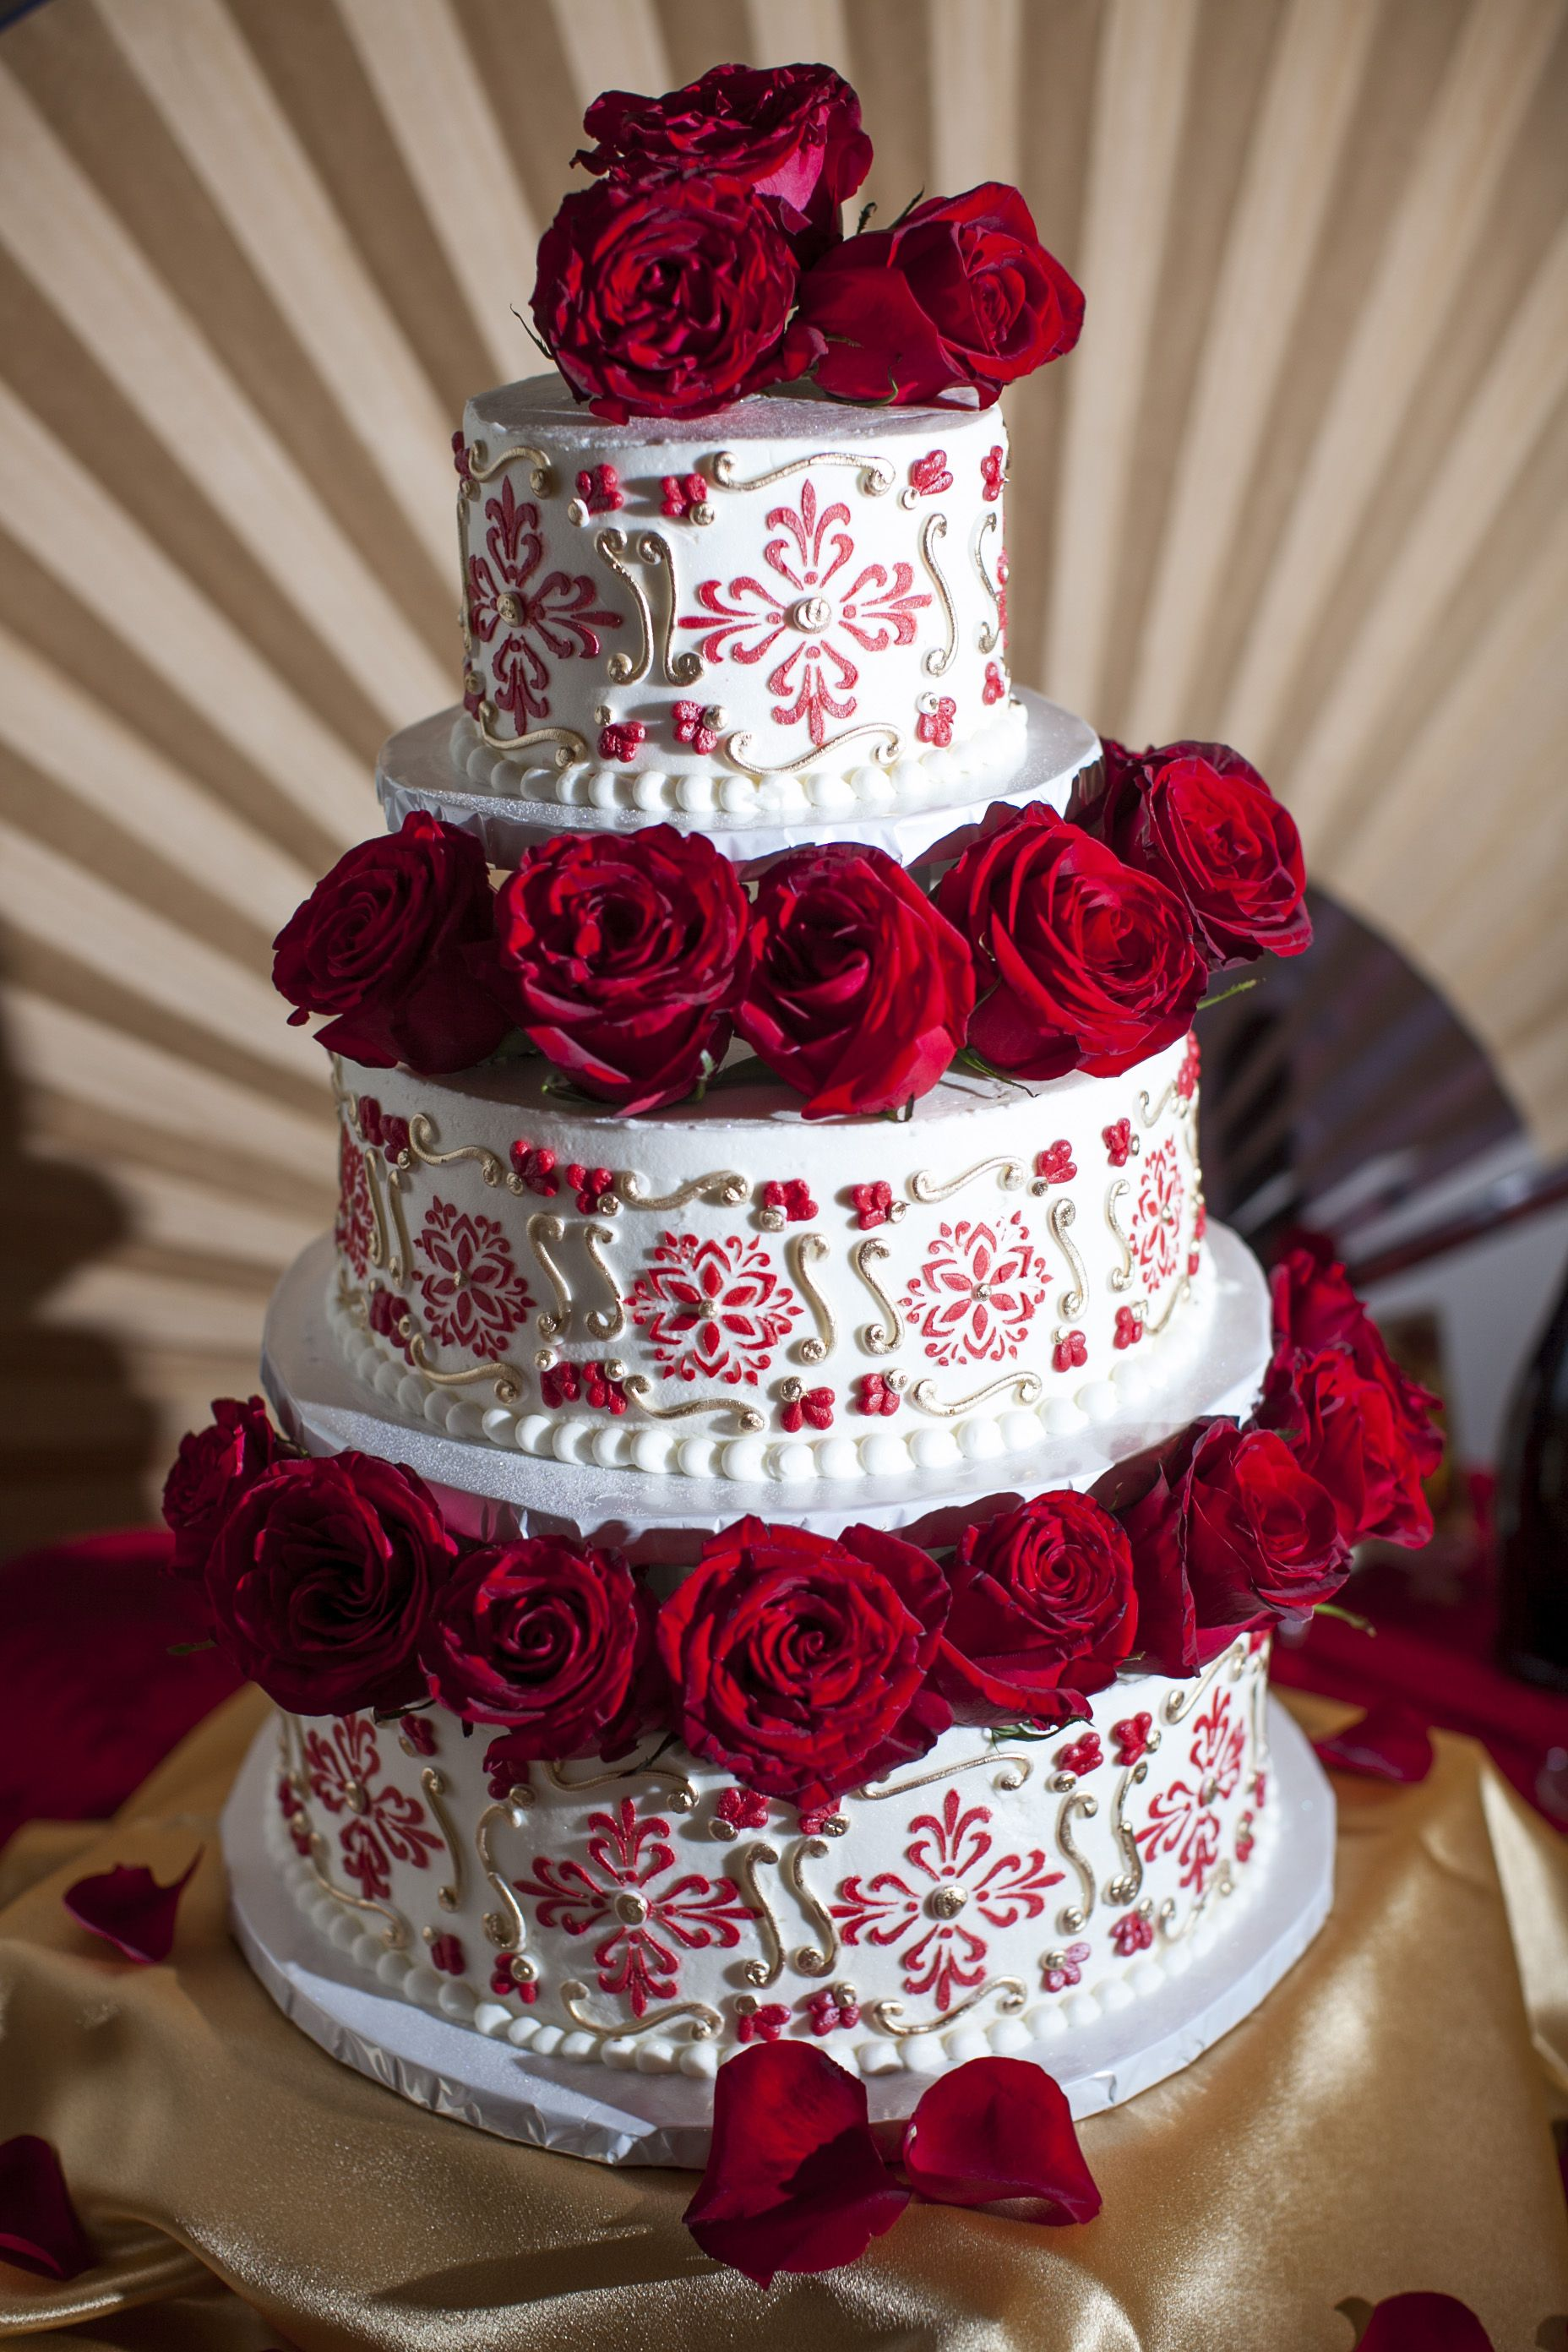 Spanish (Spain) themed wedding cake with roses. We wanted